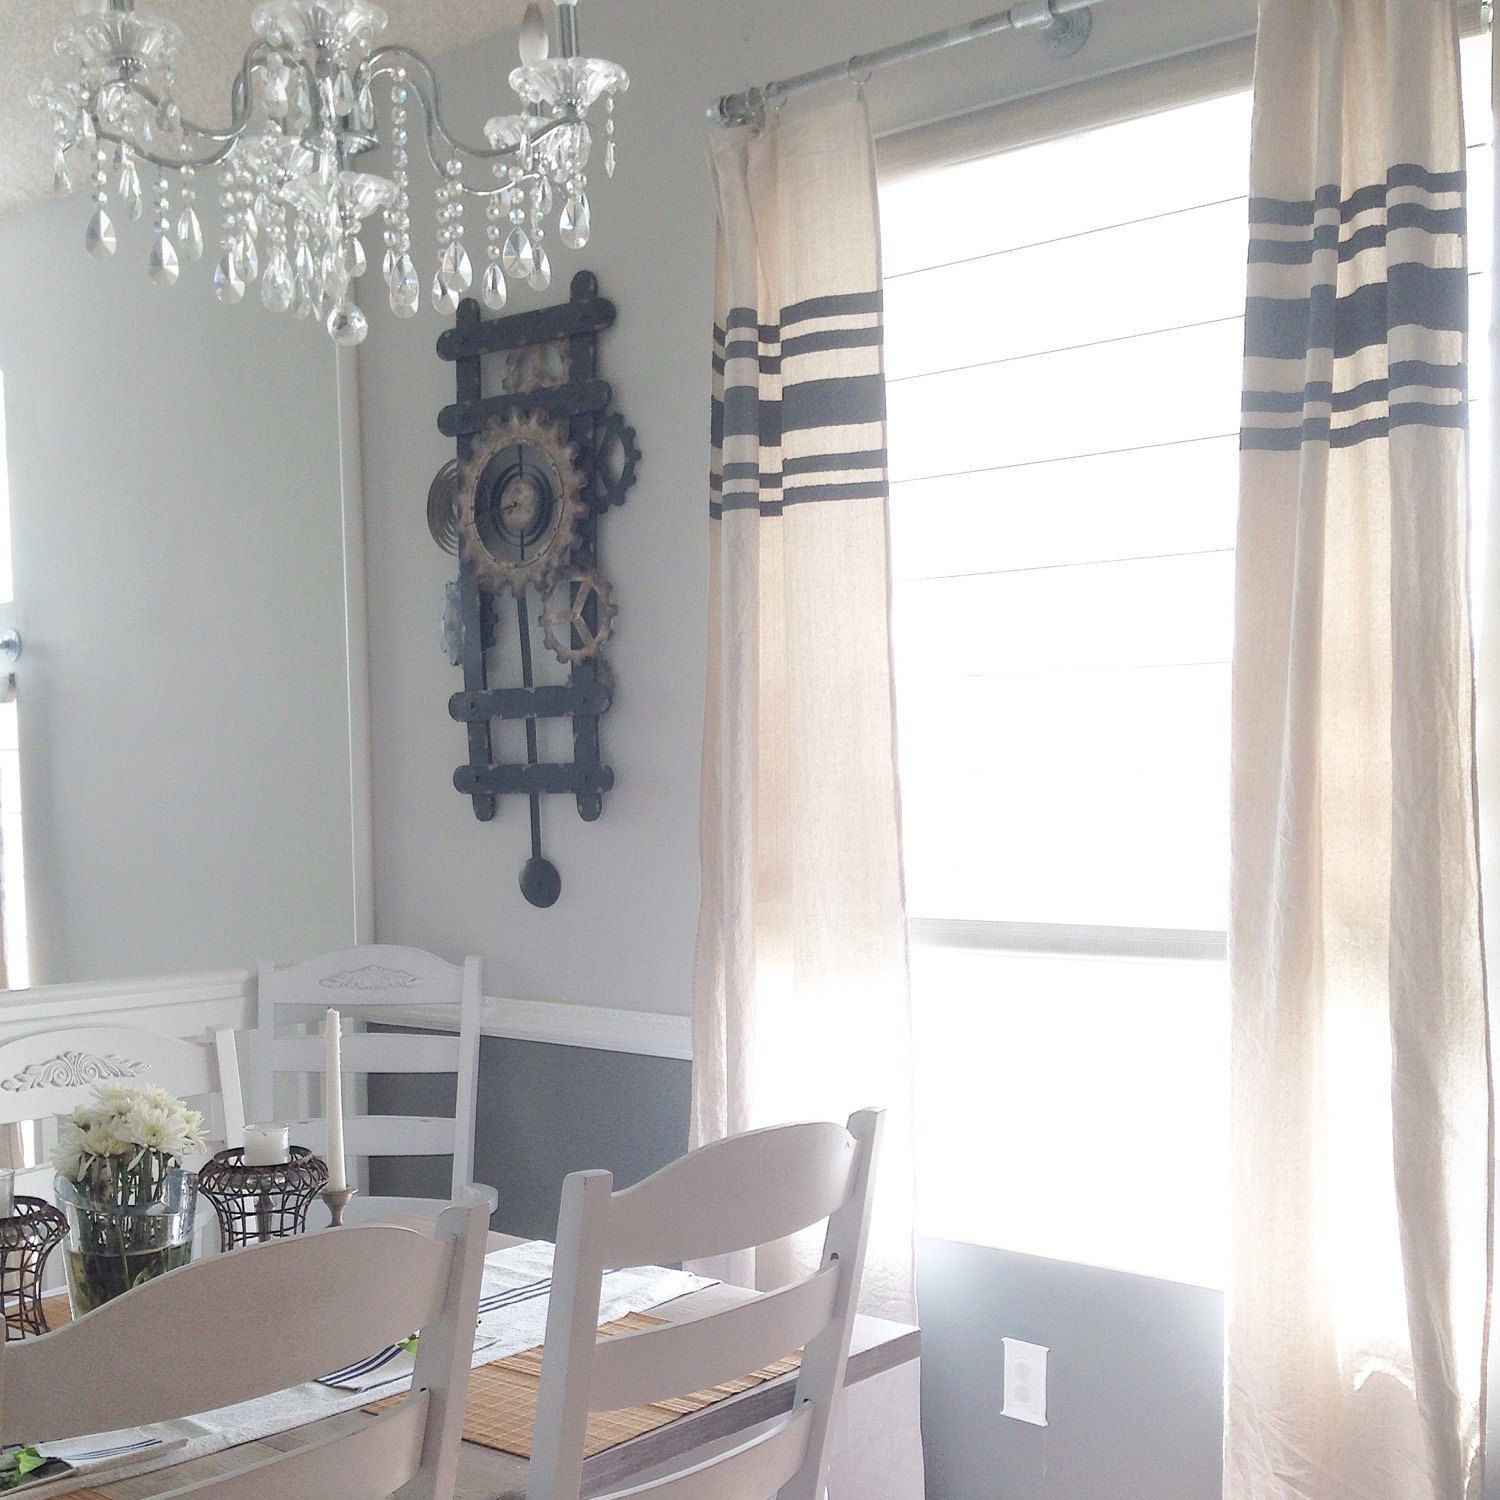 beautiful looking of will draperies window treatment valances fabric re drapery windows whether or pin elegant we ideas curtains that and curtain simple coastal have panels covered swath a for you